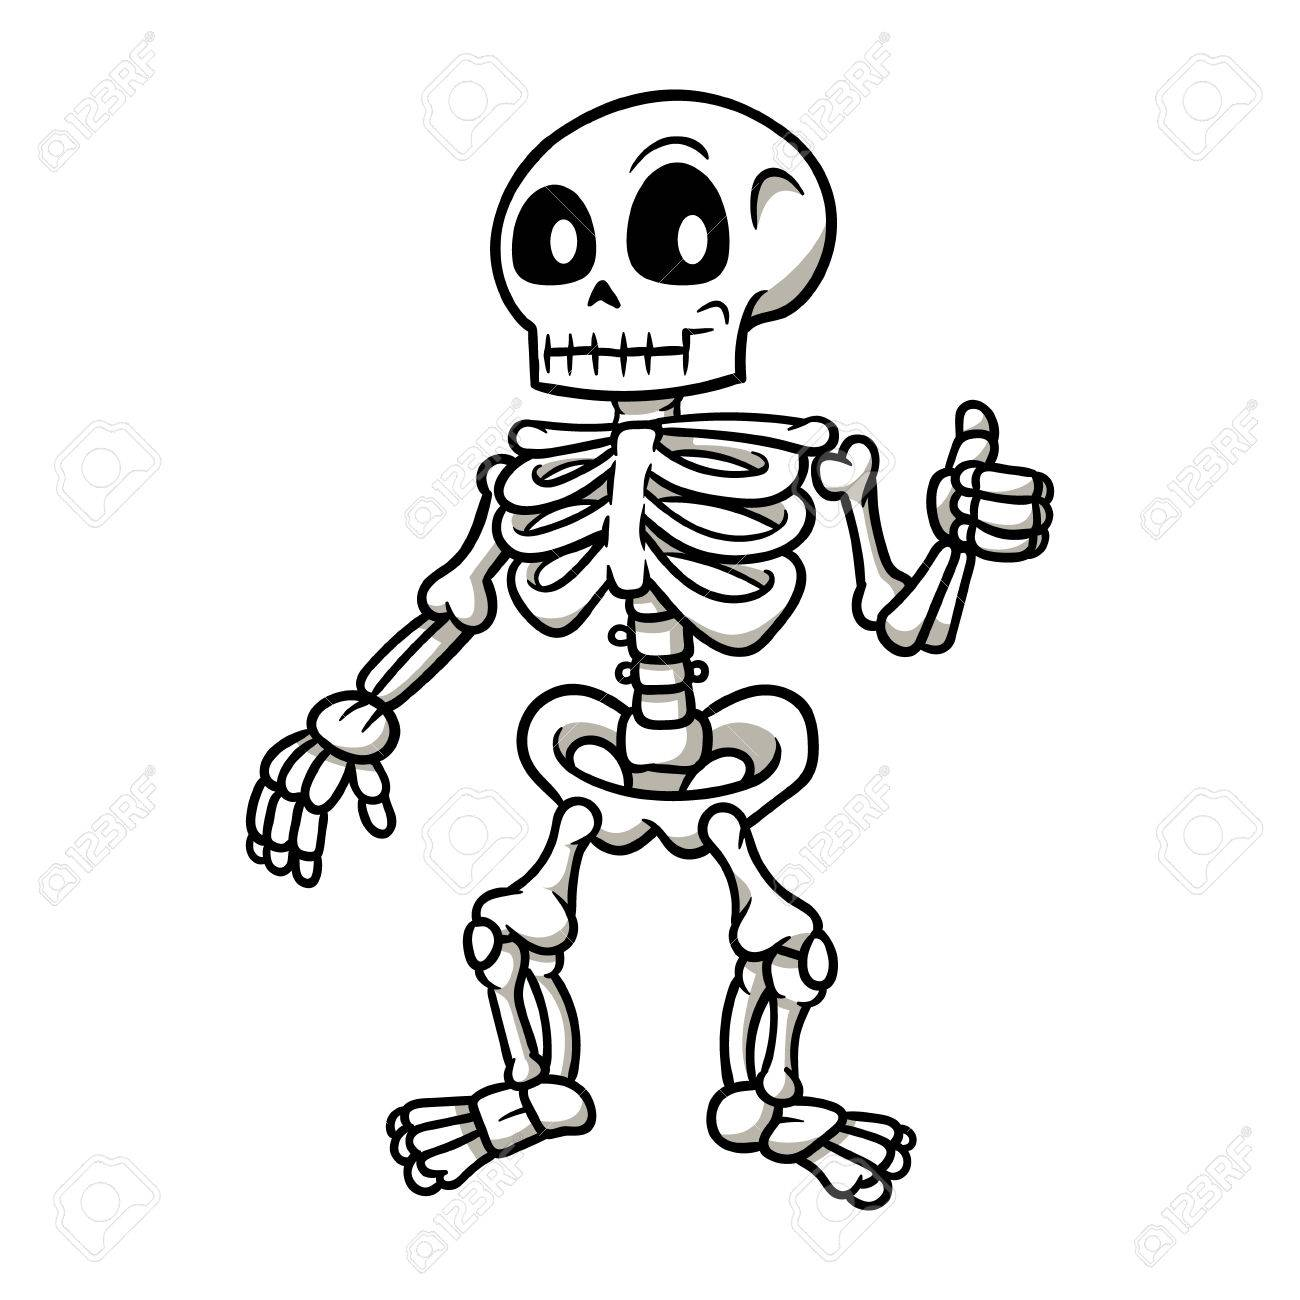 cartoon skeleton drawing at getdrawings com free for personal use rh getdrawings com skeleton clip art free skeleton clipart black and white